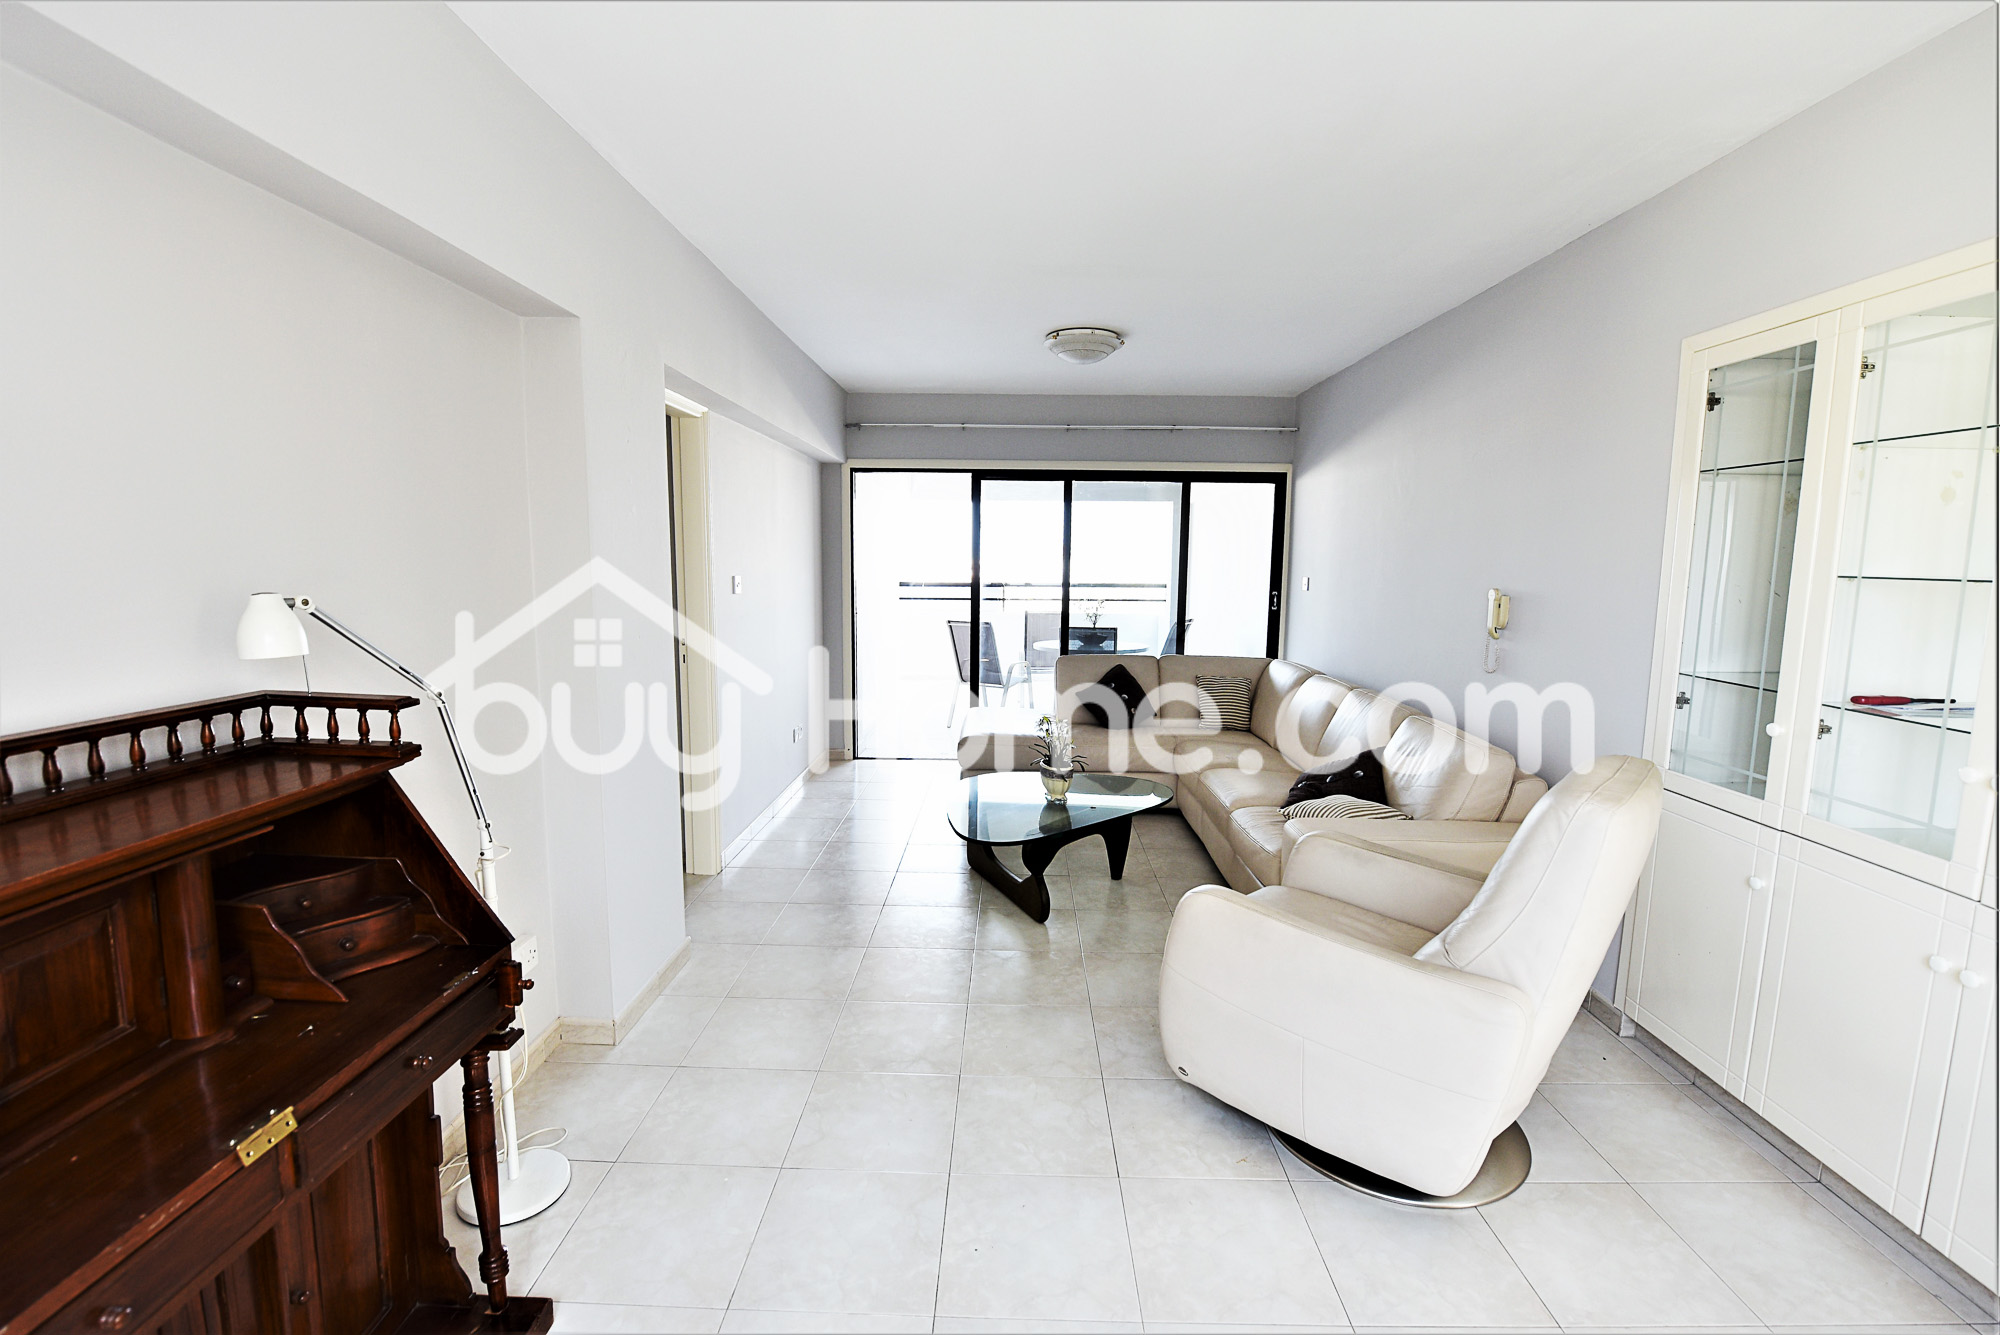 3 Bedroom Apartment or Office | BuyHome